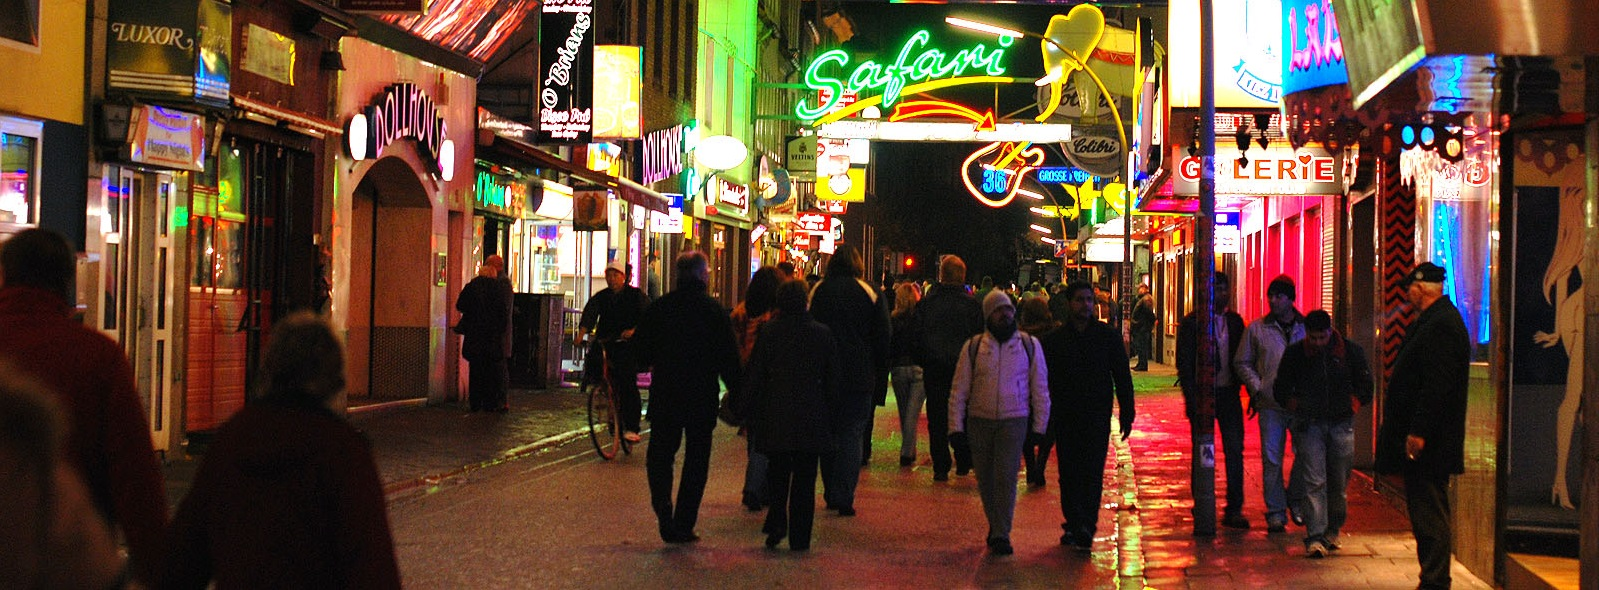 Reeperbahn image for Top Things To Do in Hamburg blog